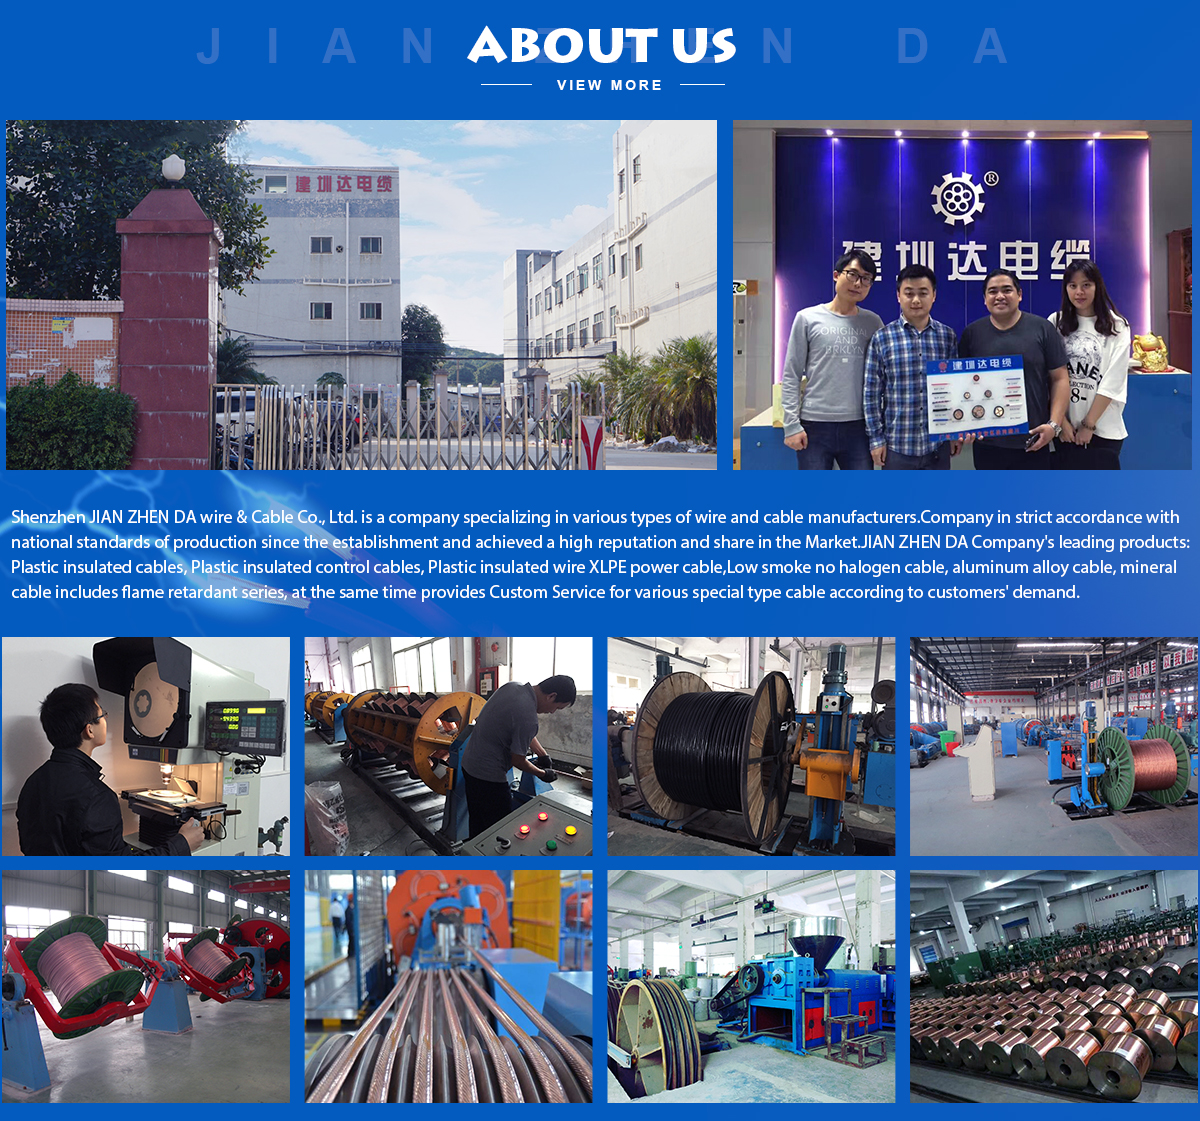 Shenzhen Jianzhenda Wire And Cable Co Ltd Plastic Insulated China Copper Pvc Electric H07vr H07vk Photos Containing Flame Retardant Fire Resistant Productsthe Application For Certification Passed The Quality Management System Based